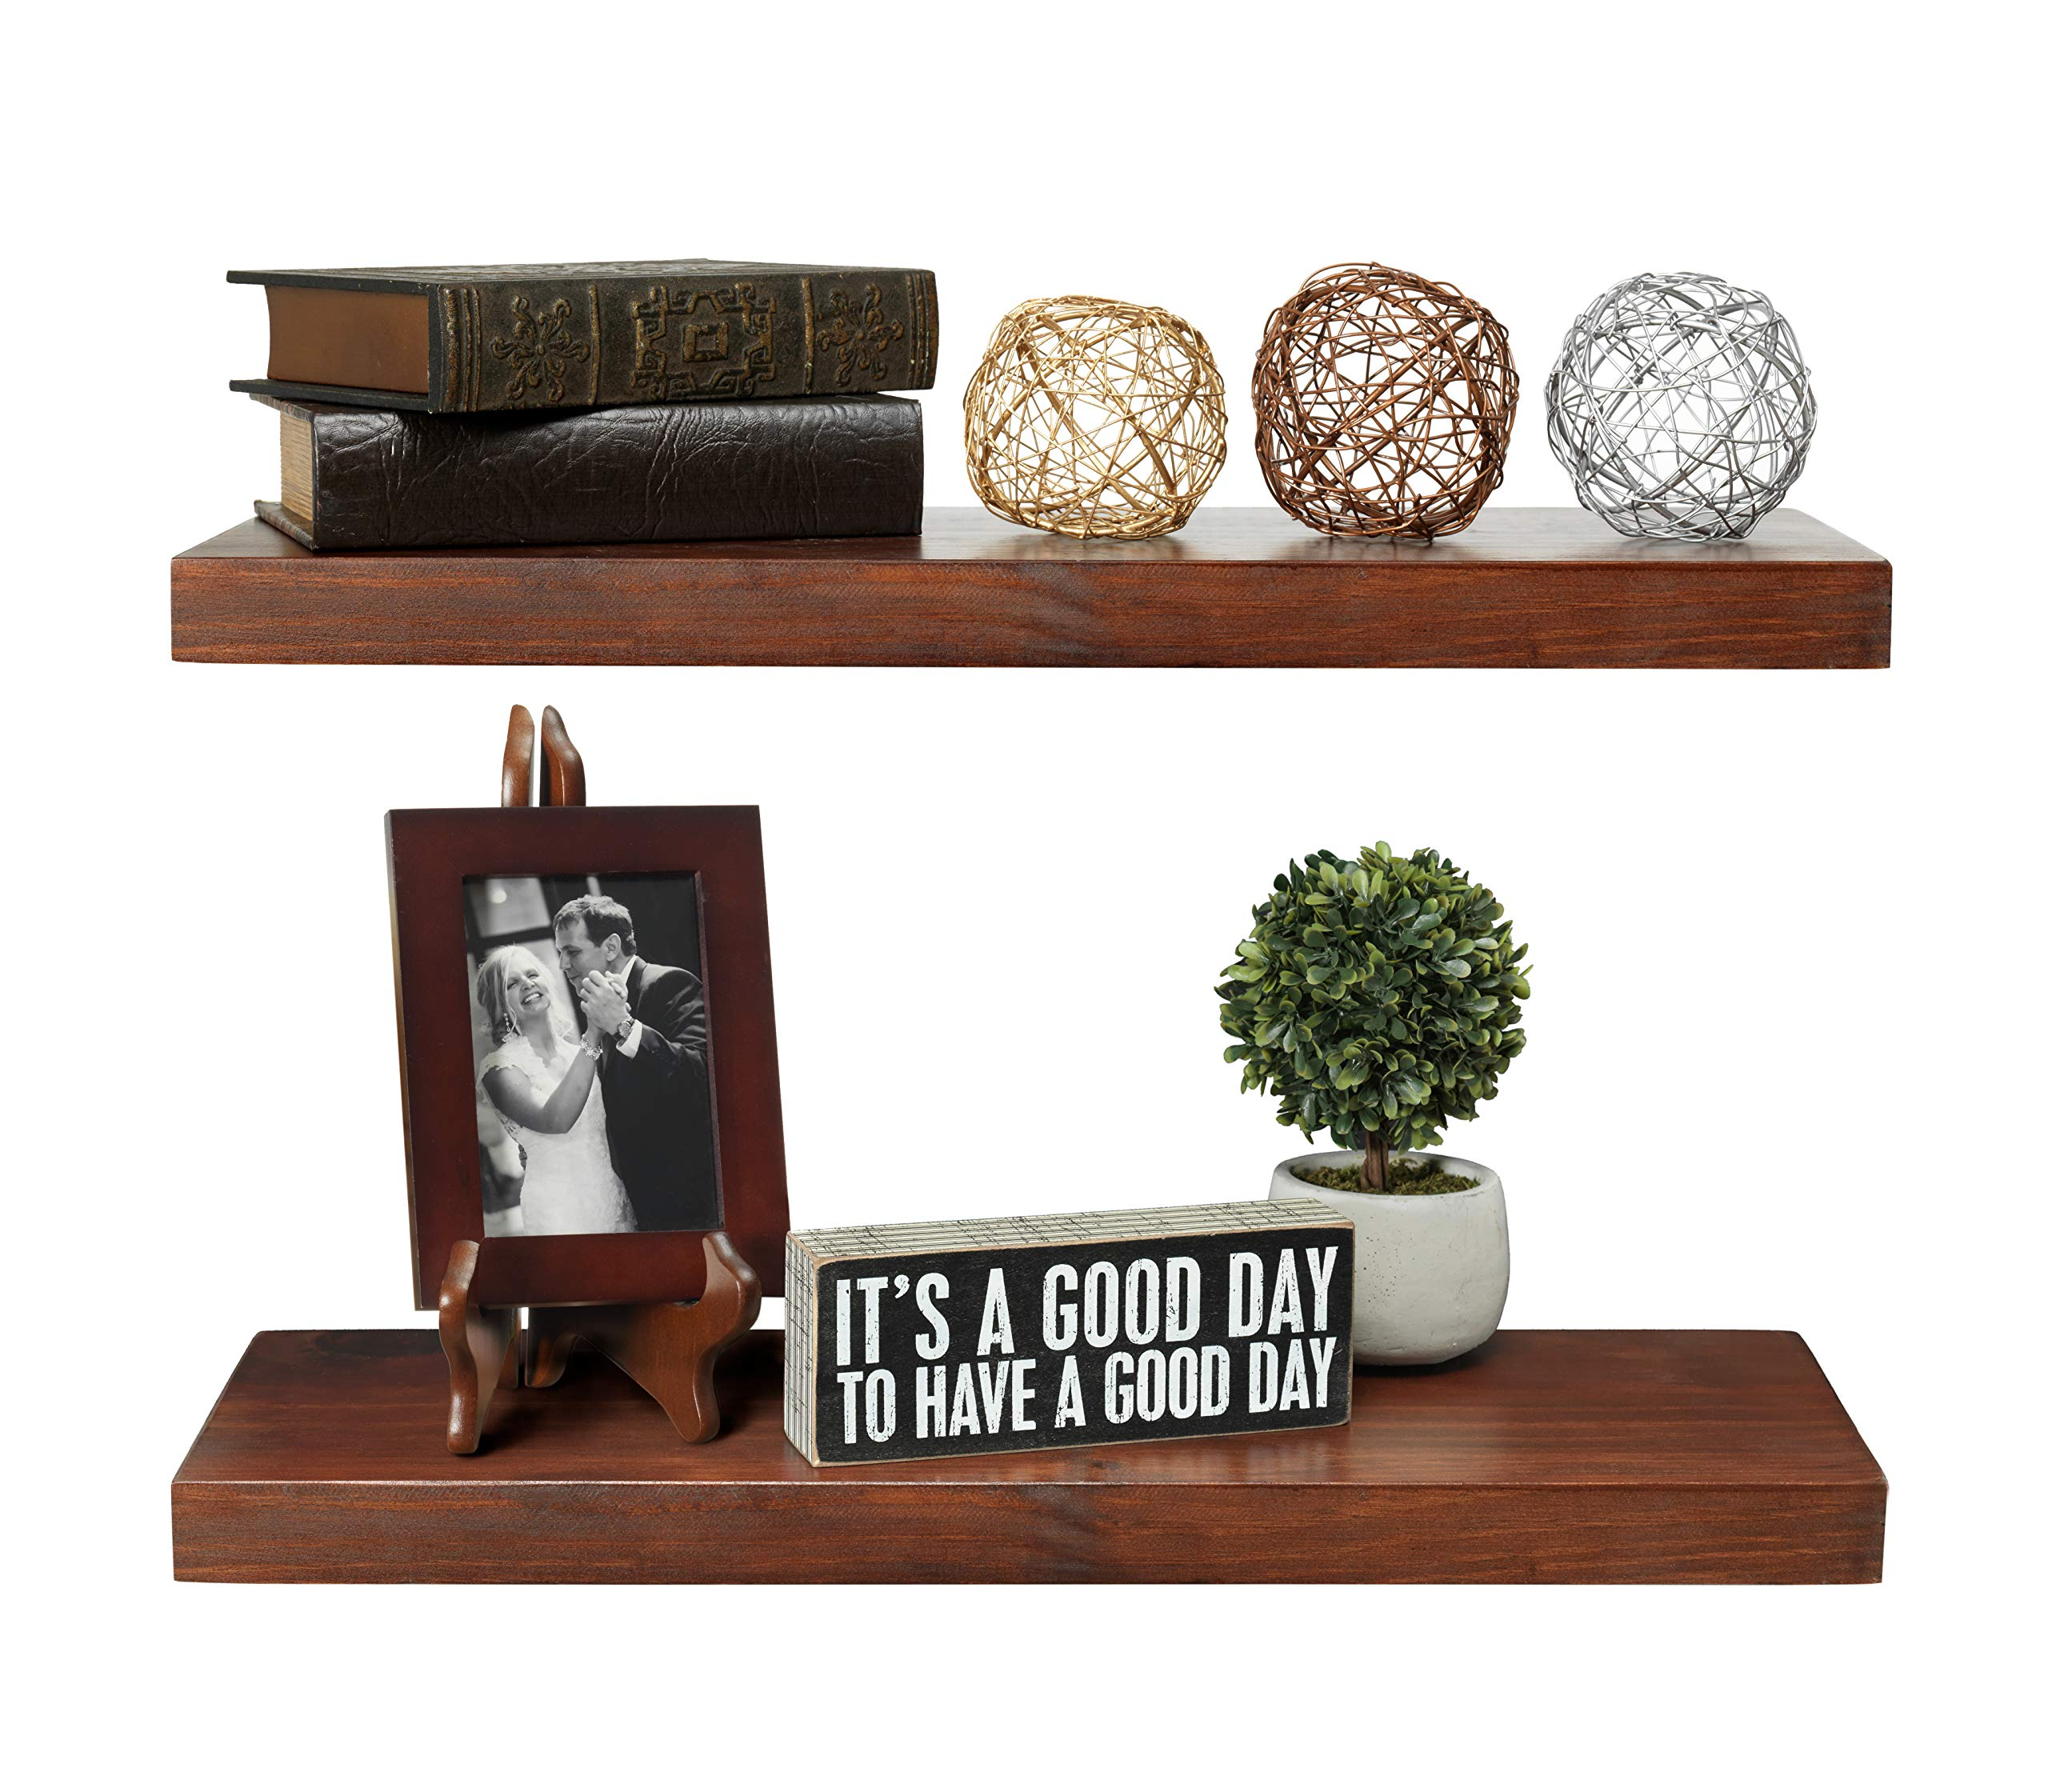 Rustic Farmhouse Premium 2 Tier Floating Wood Shelf - Floating Wall Shelves (Set of 2), Hardware and Fasteners Included (2 Tier 8'', Walnut)